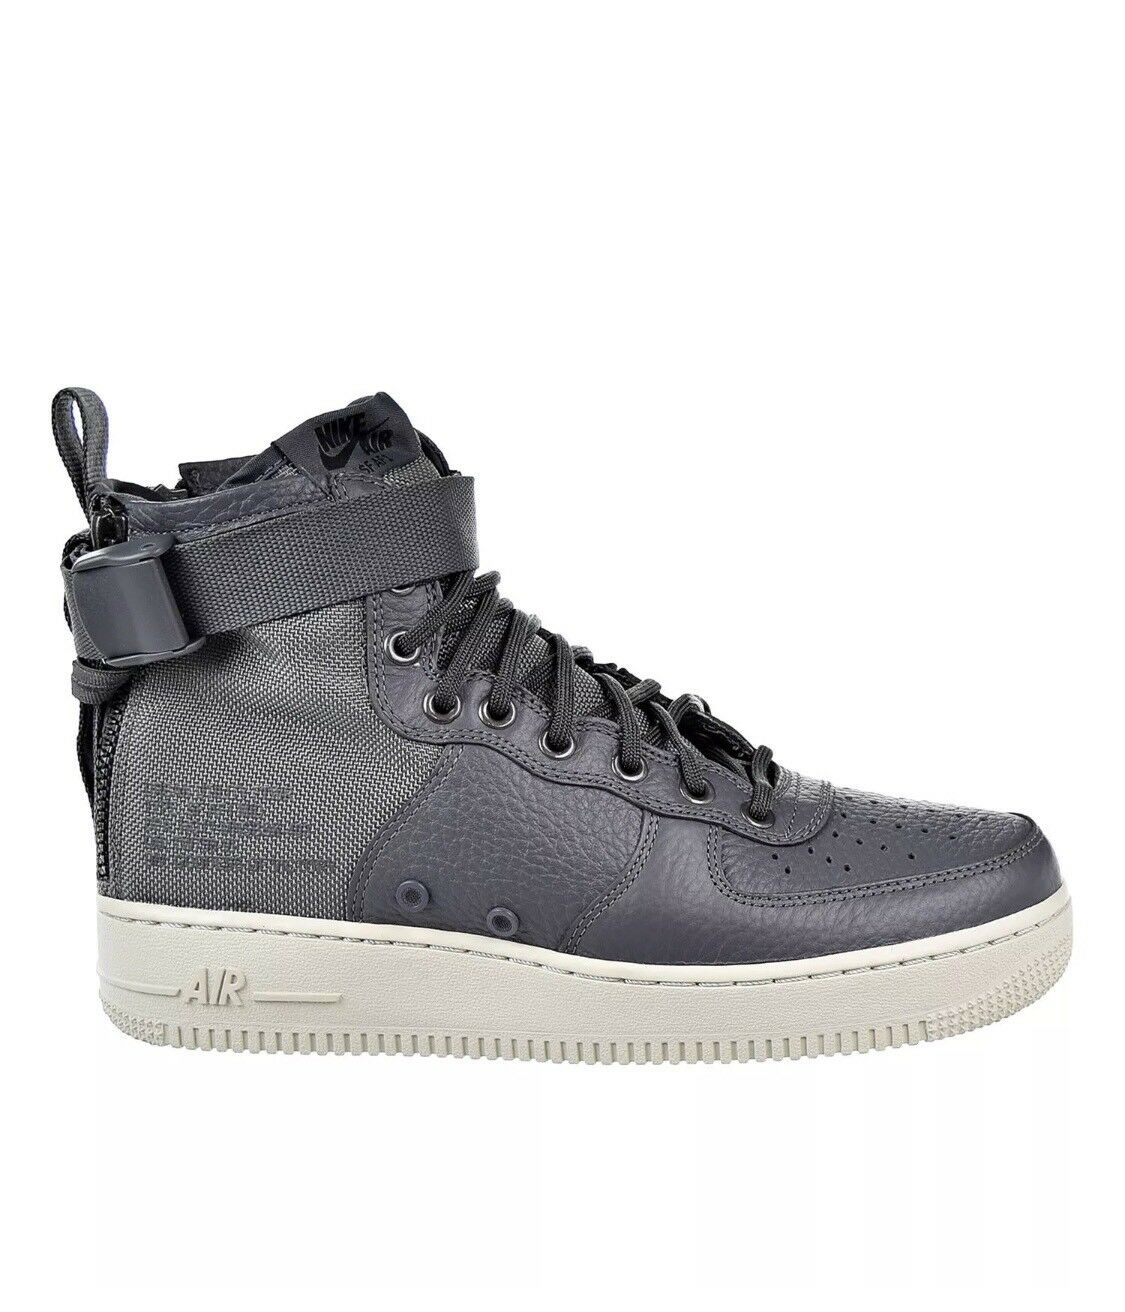 Nike Men's SF Air Force 1 Mid Dark Grey 917753-004